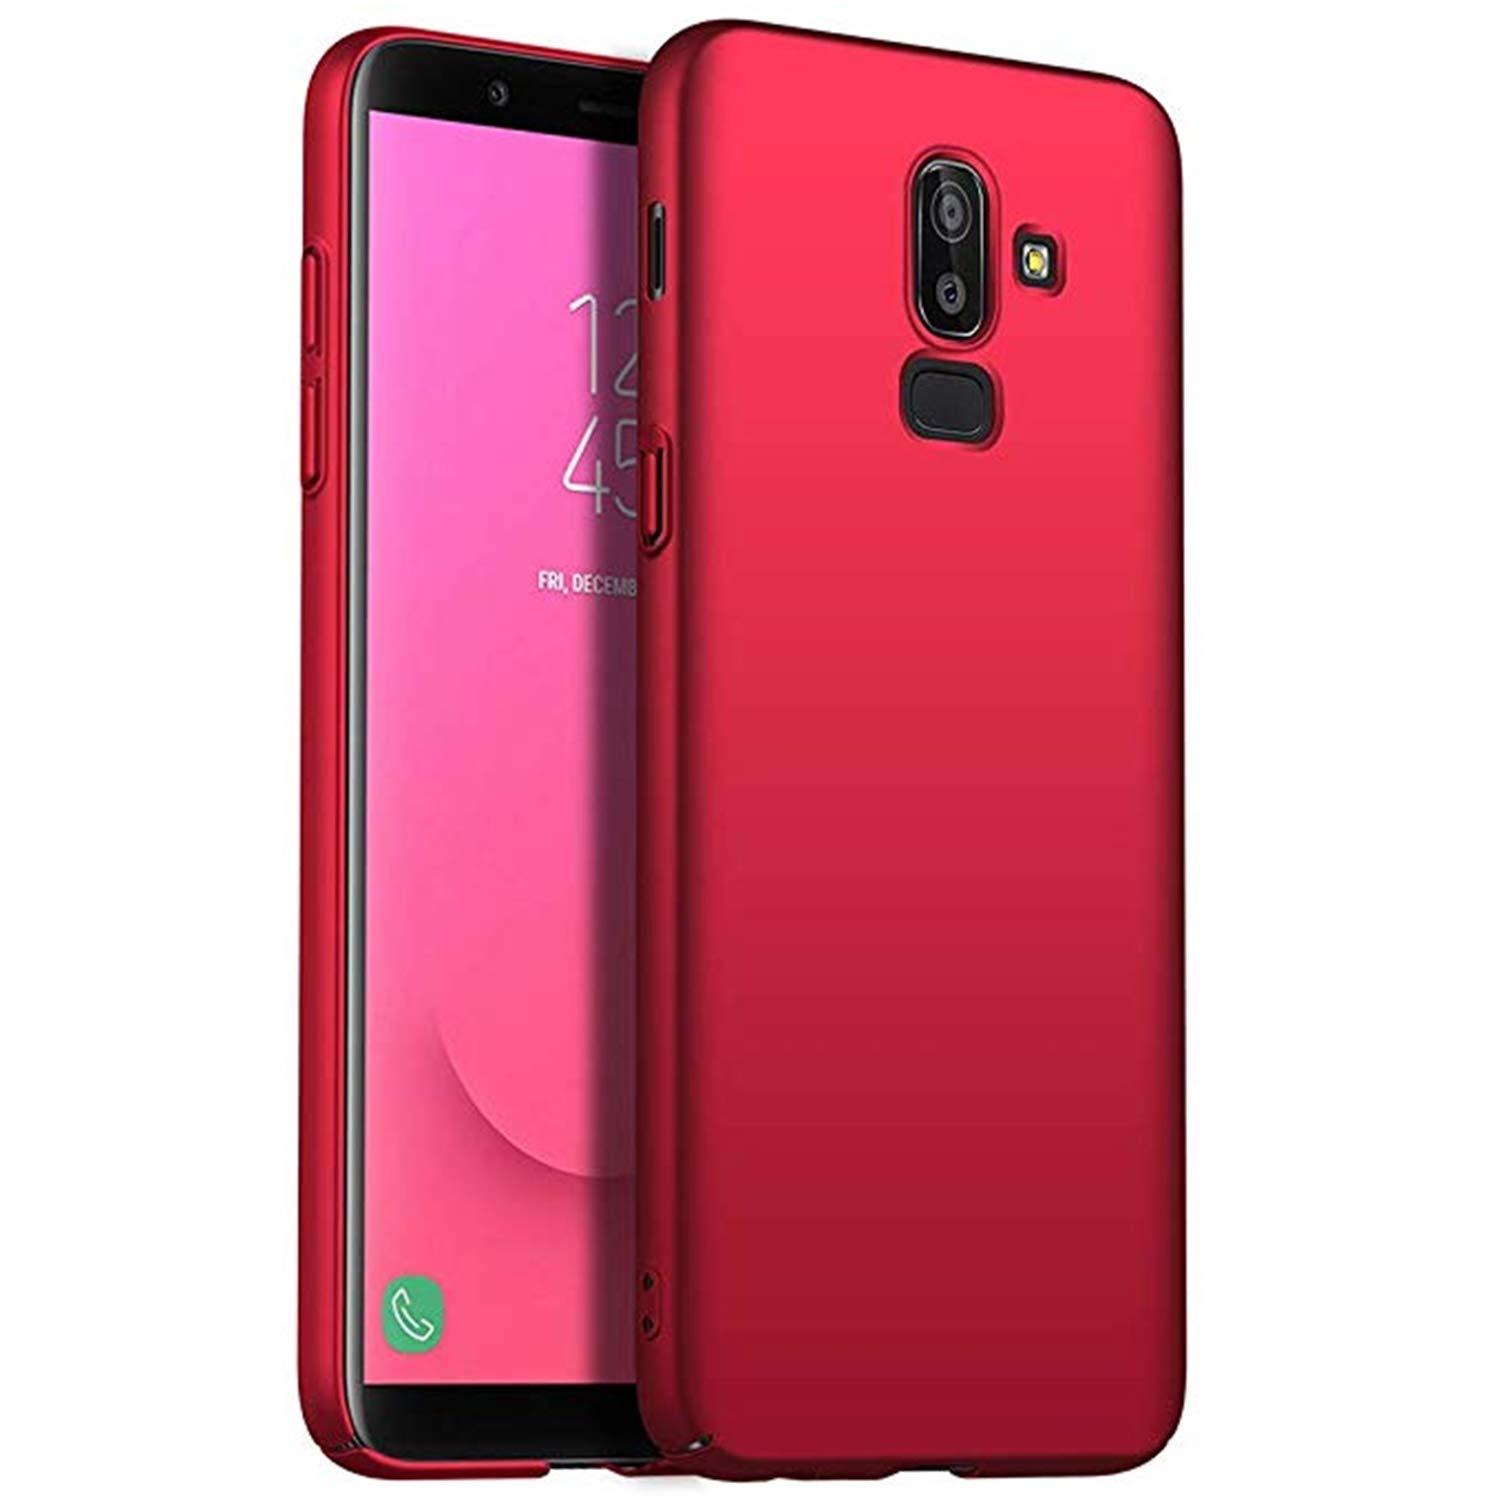 Hishiny Coque Samsung Galaxy A8 Plus 2018, Dur PC Housse [Ultra Mince] [Ultra Léger] Anti-Rayures A8 Plus 2018 Étui Protector Shell Bumper Case Cover Samsung Galaxy A8 Plus 2018 Coque Étui